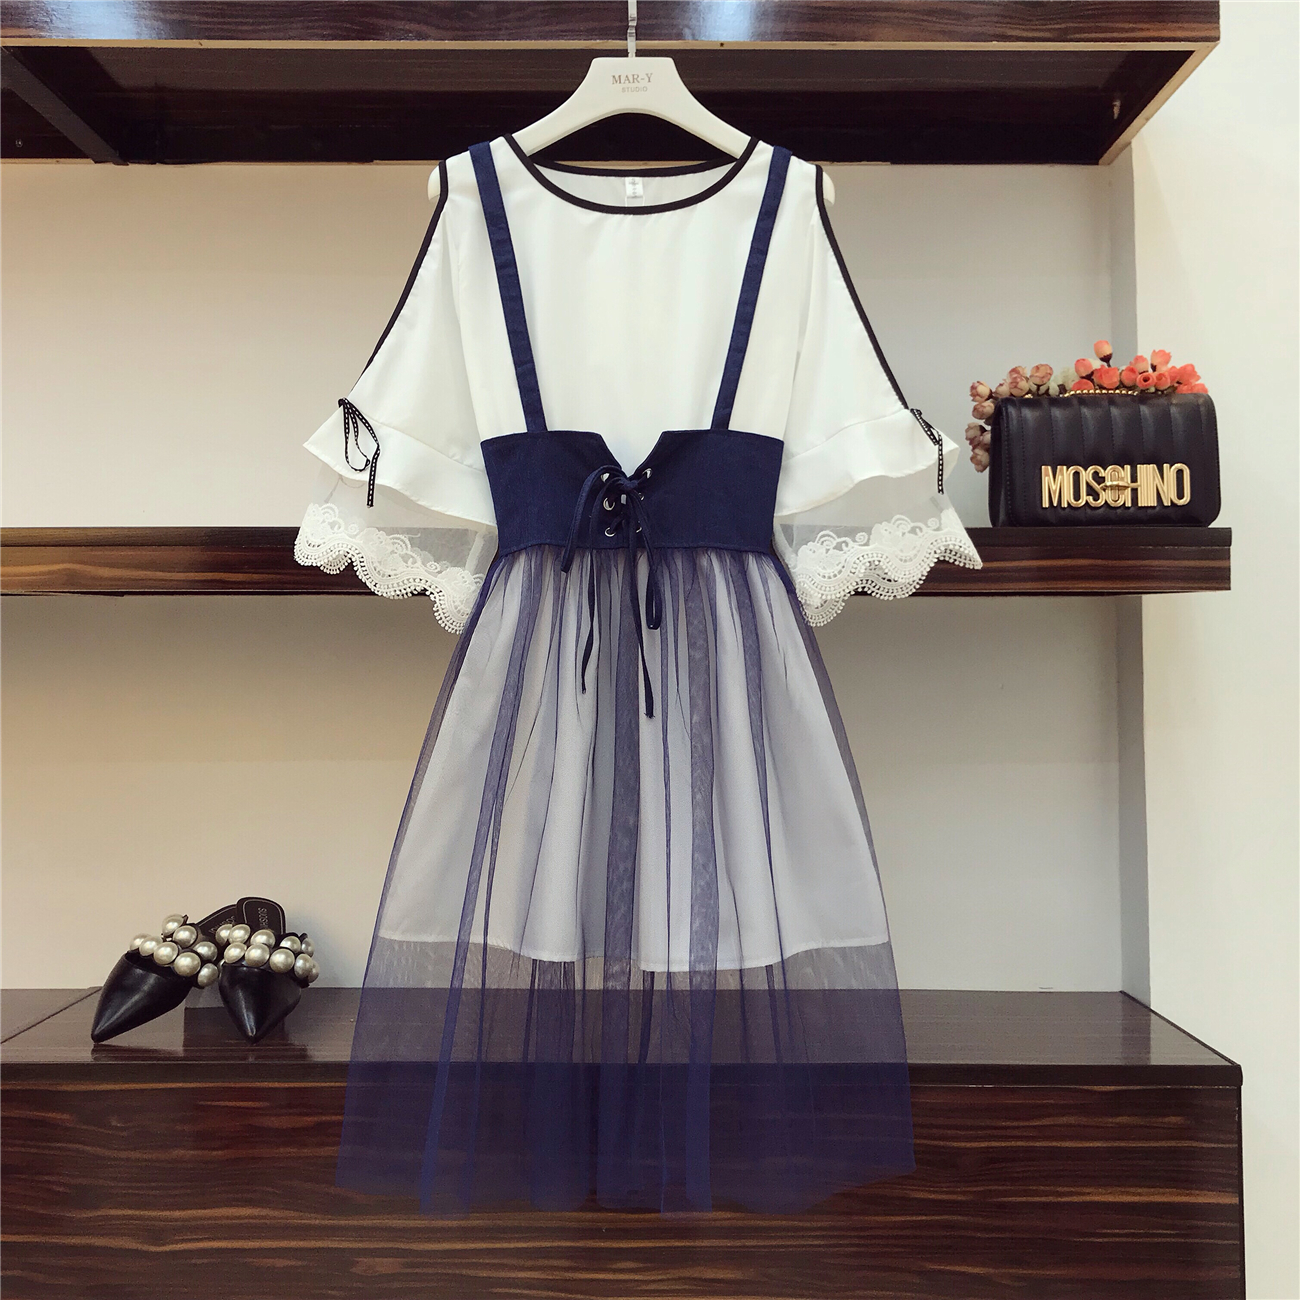 2018 Summer Women Fashion Horn Sleeve Slim Waist Shirt Dress + Denim Stitching Mesh Suspender Skirt Girl Students 2 Piece Sets